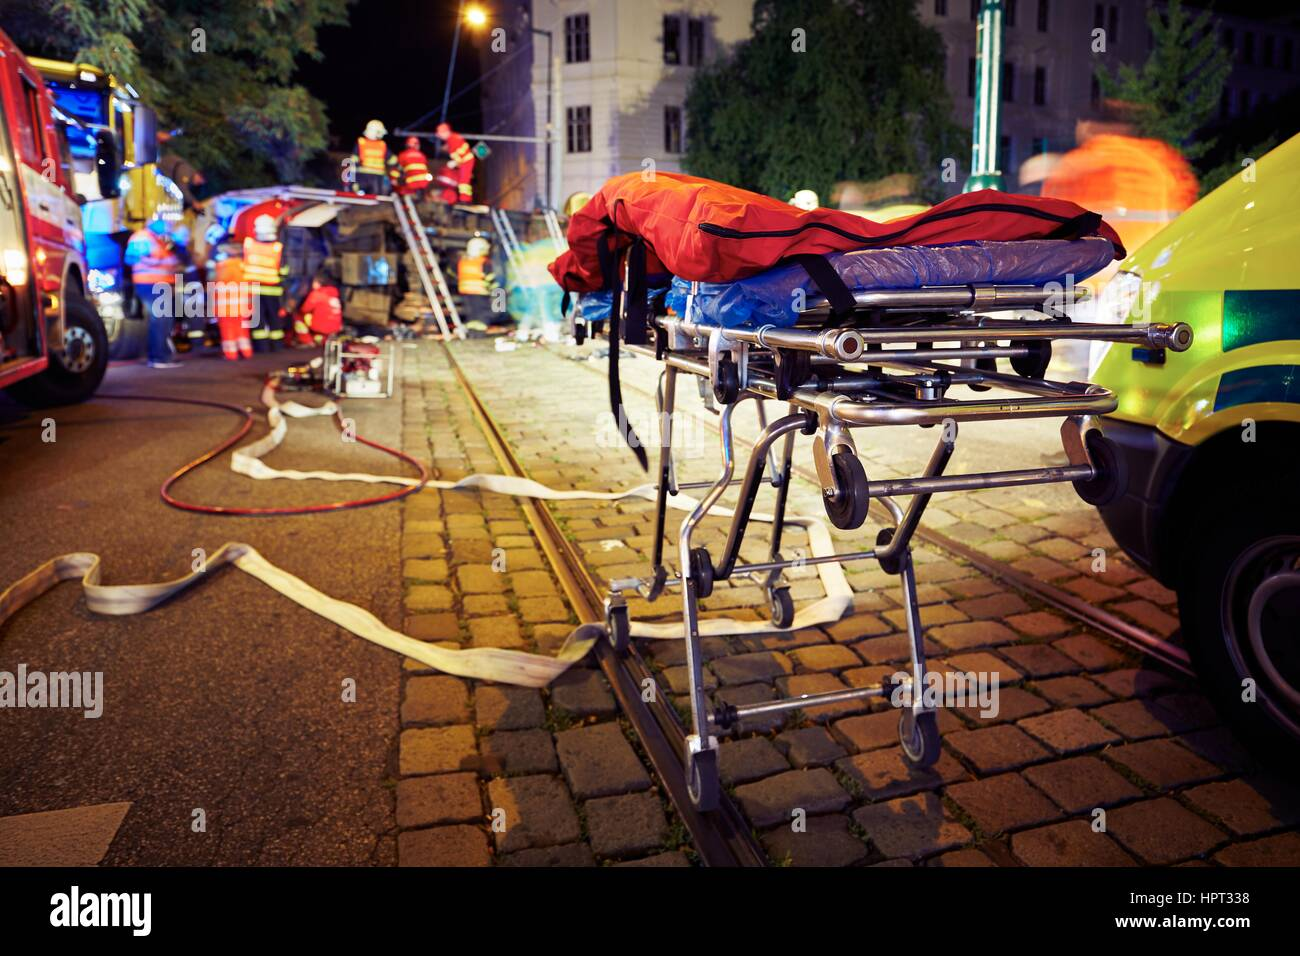 Accident on the city road at night. - Stock Image